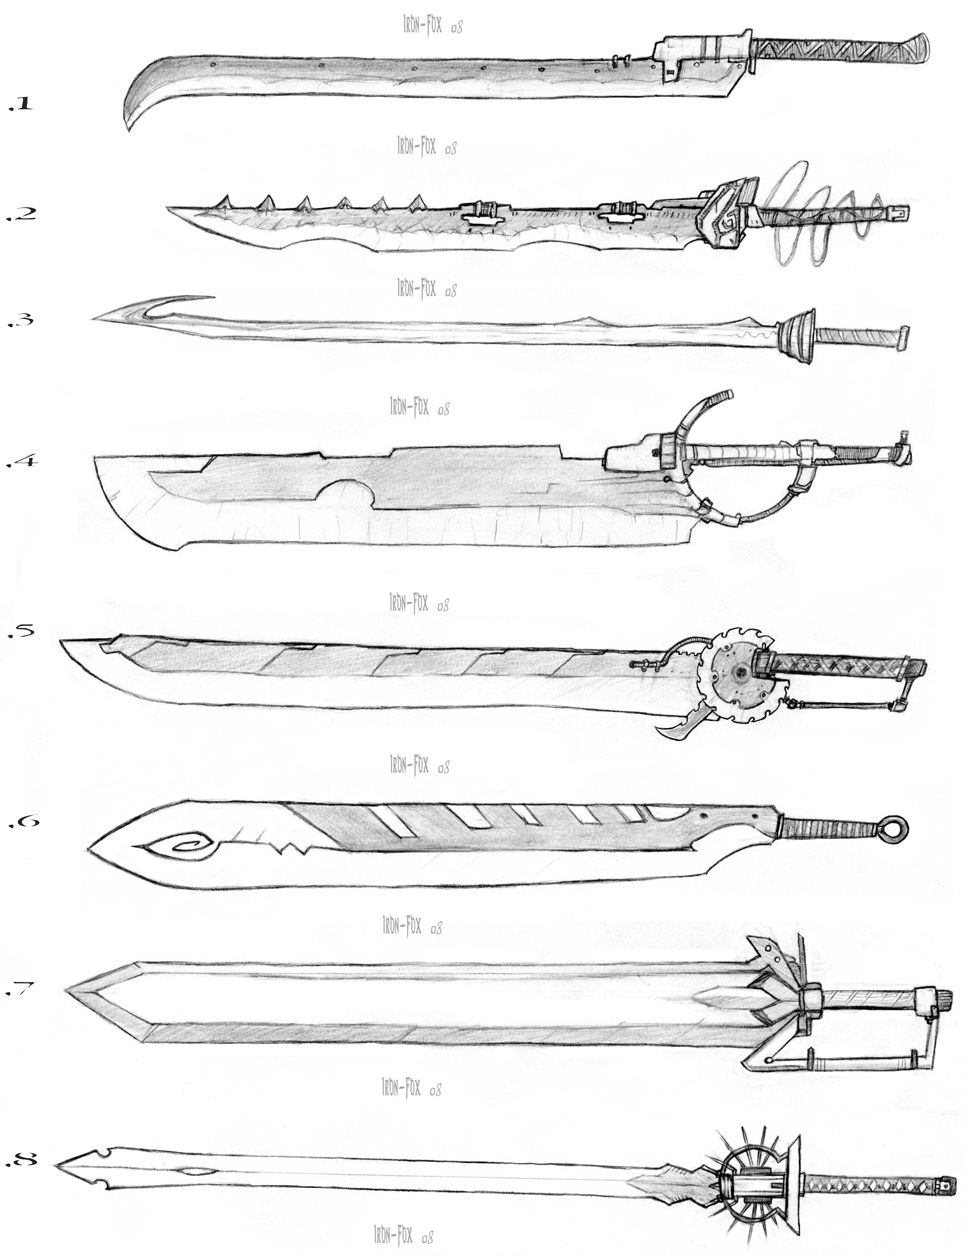 Sword Designs 2 by Iron-Fox on DeviantArt